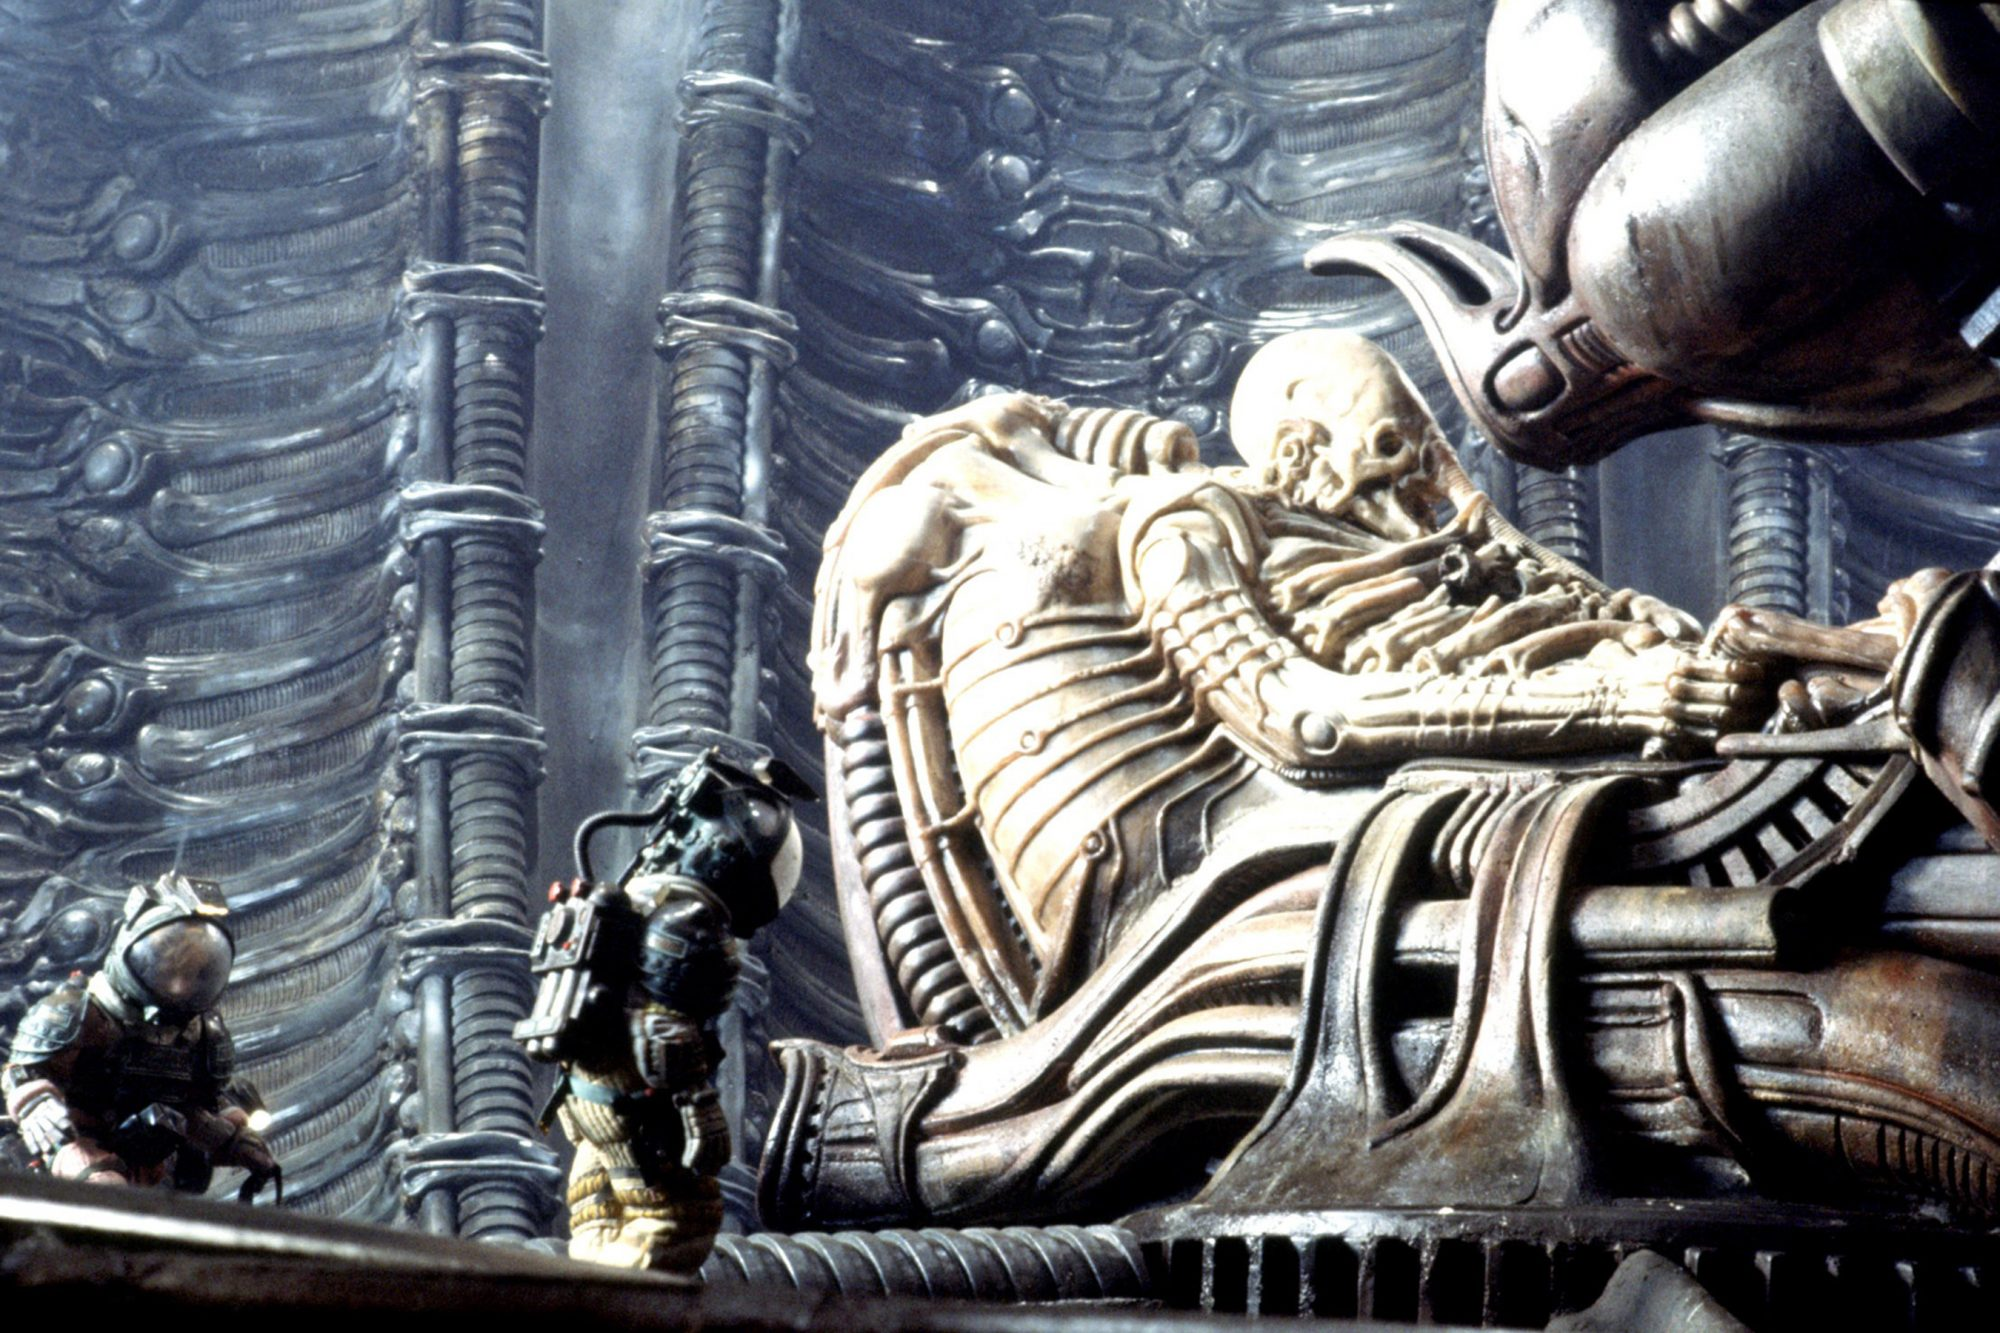 ALIEN, 1979, TM & Copyright (c) 20th Century Fox Film Corp. All rights reserved.